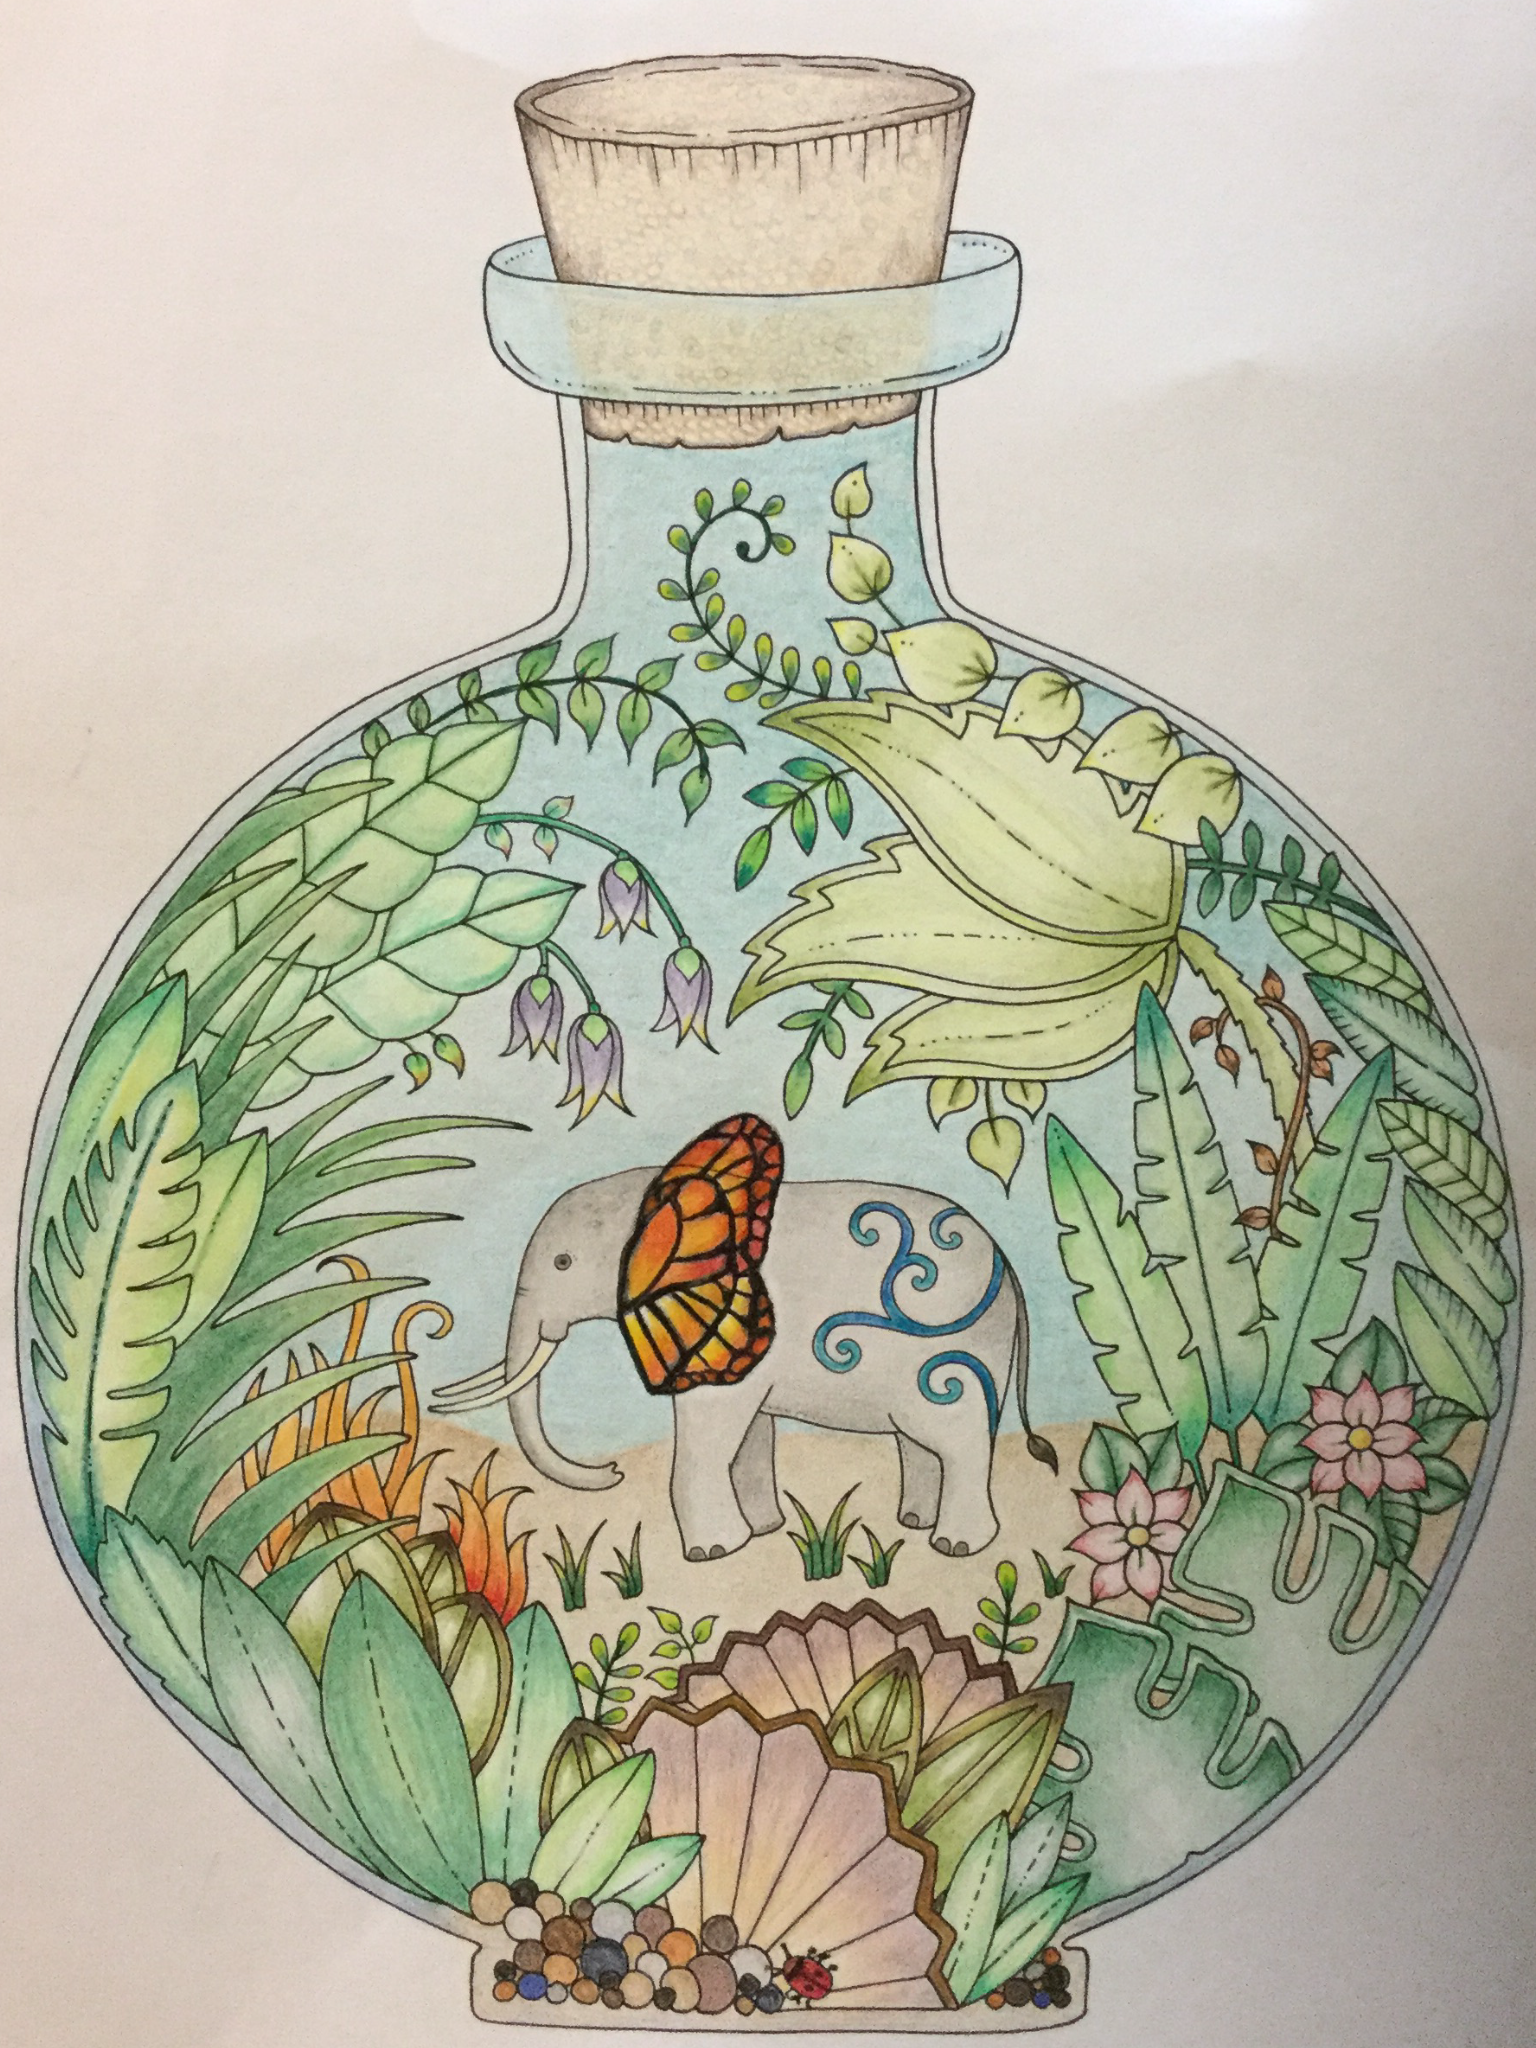 Elephant From Johanna Basfords Magical Jungle Coloring Book Finished 9 3